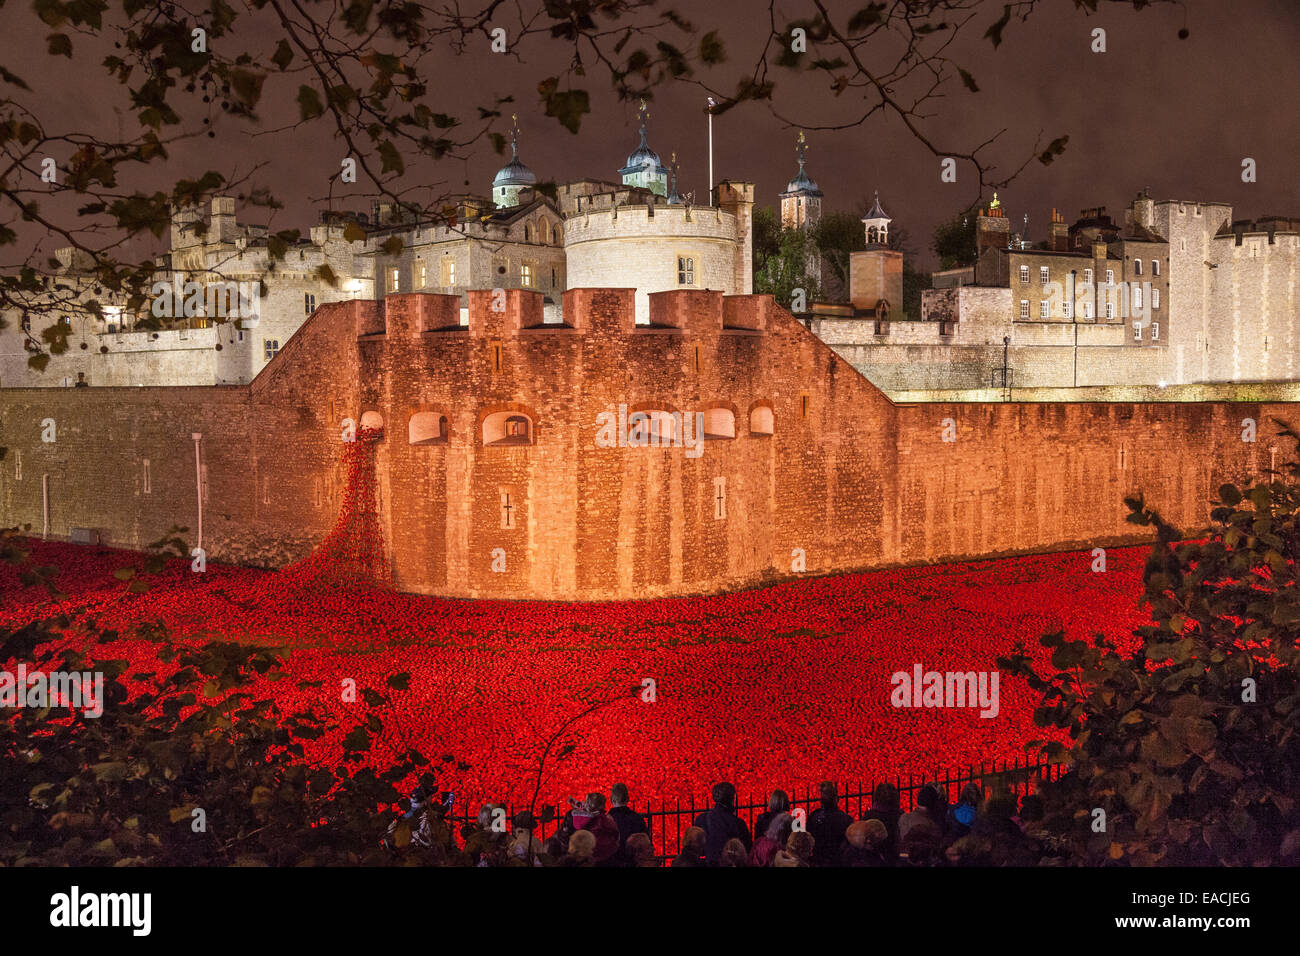 London, England, UK. 11 November 2014. The Tower of London in the night of Armistice Day – the final day to see Stock Photo